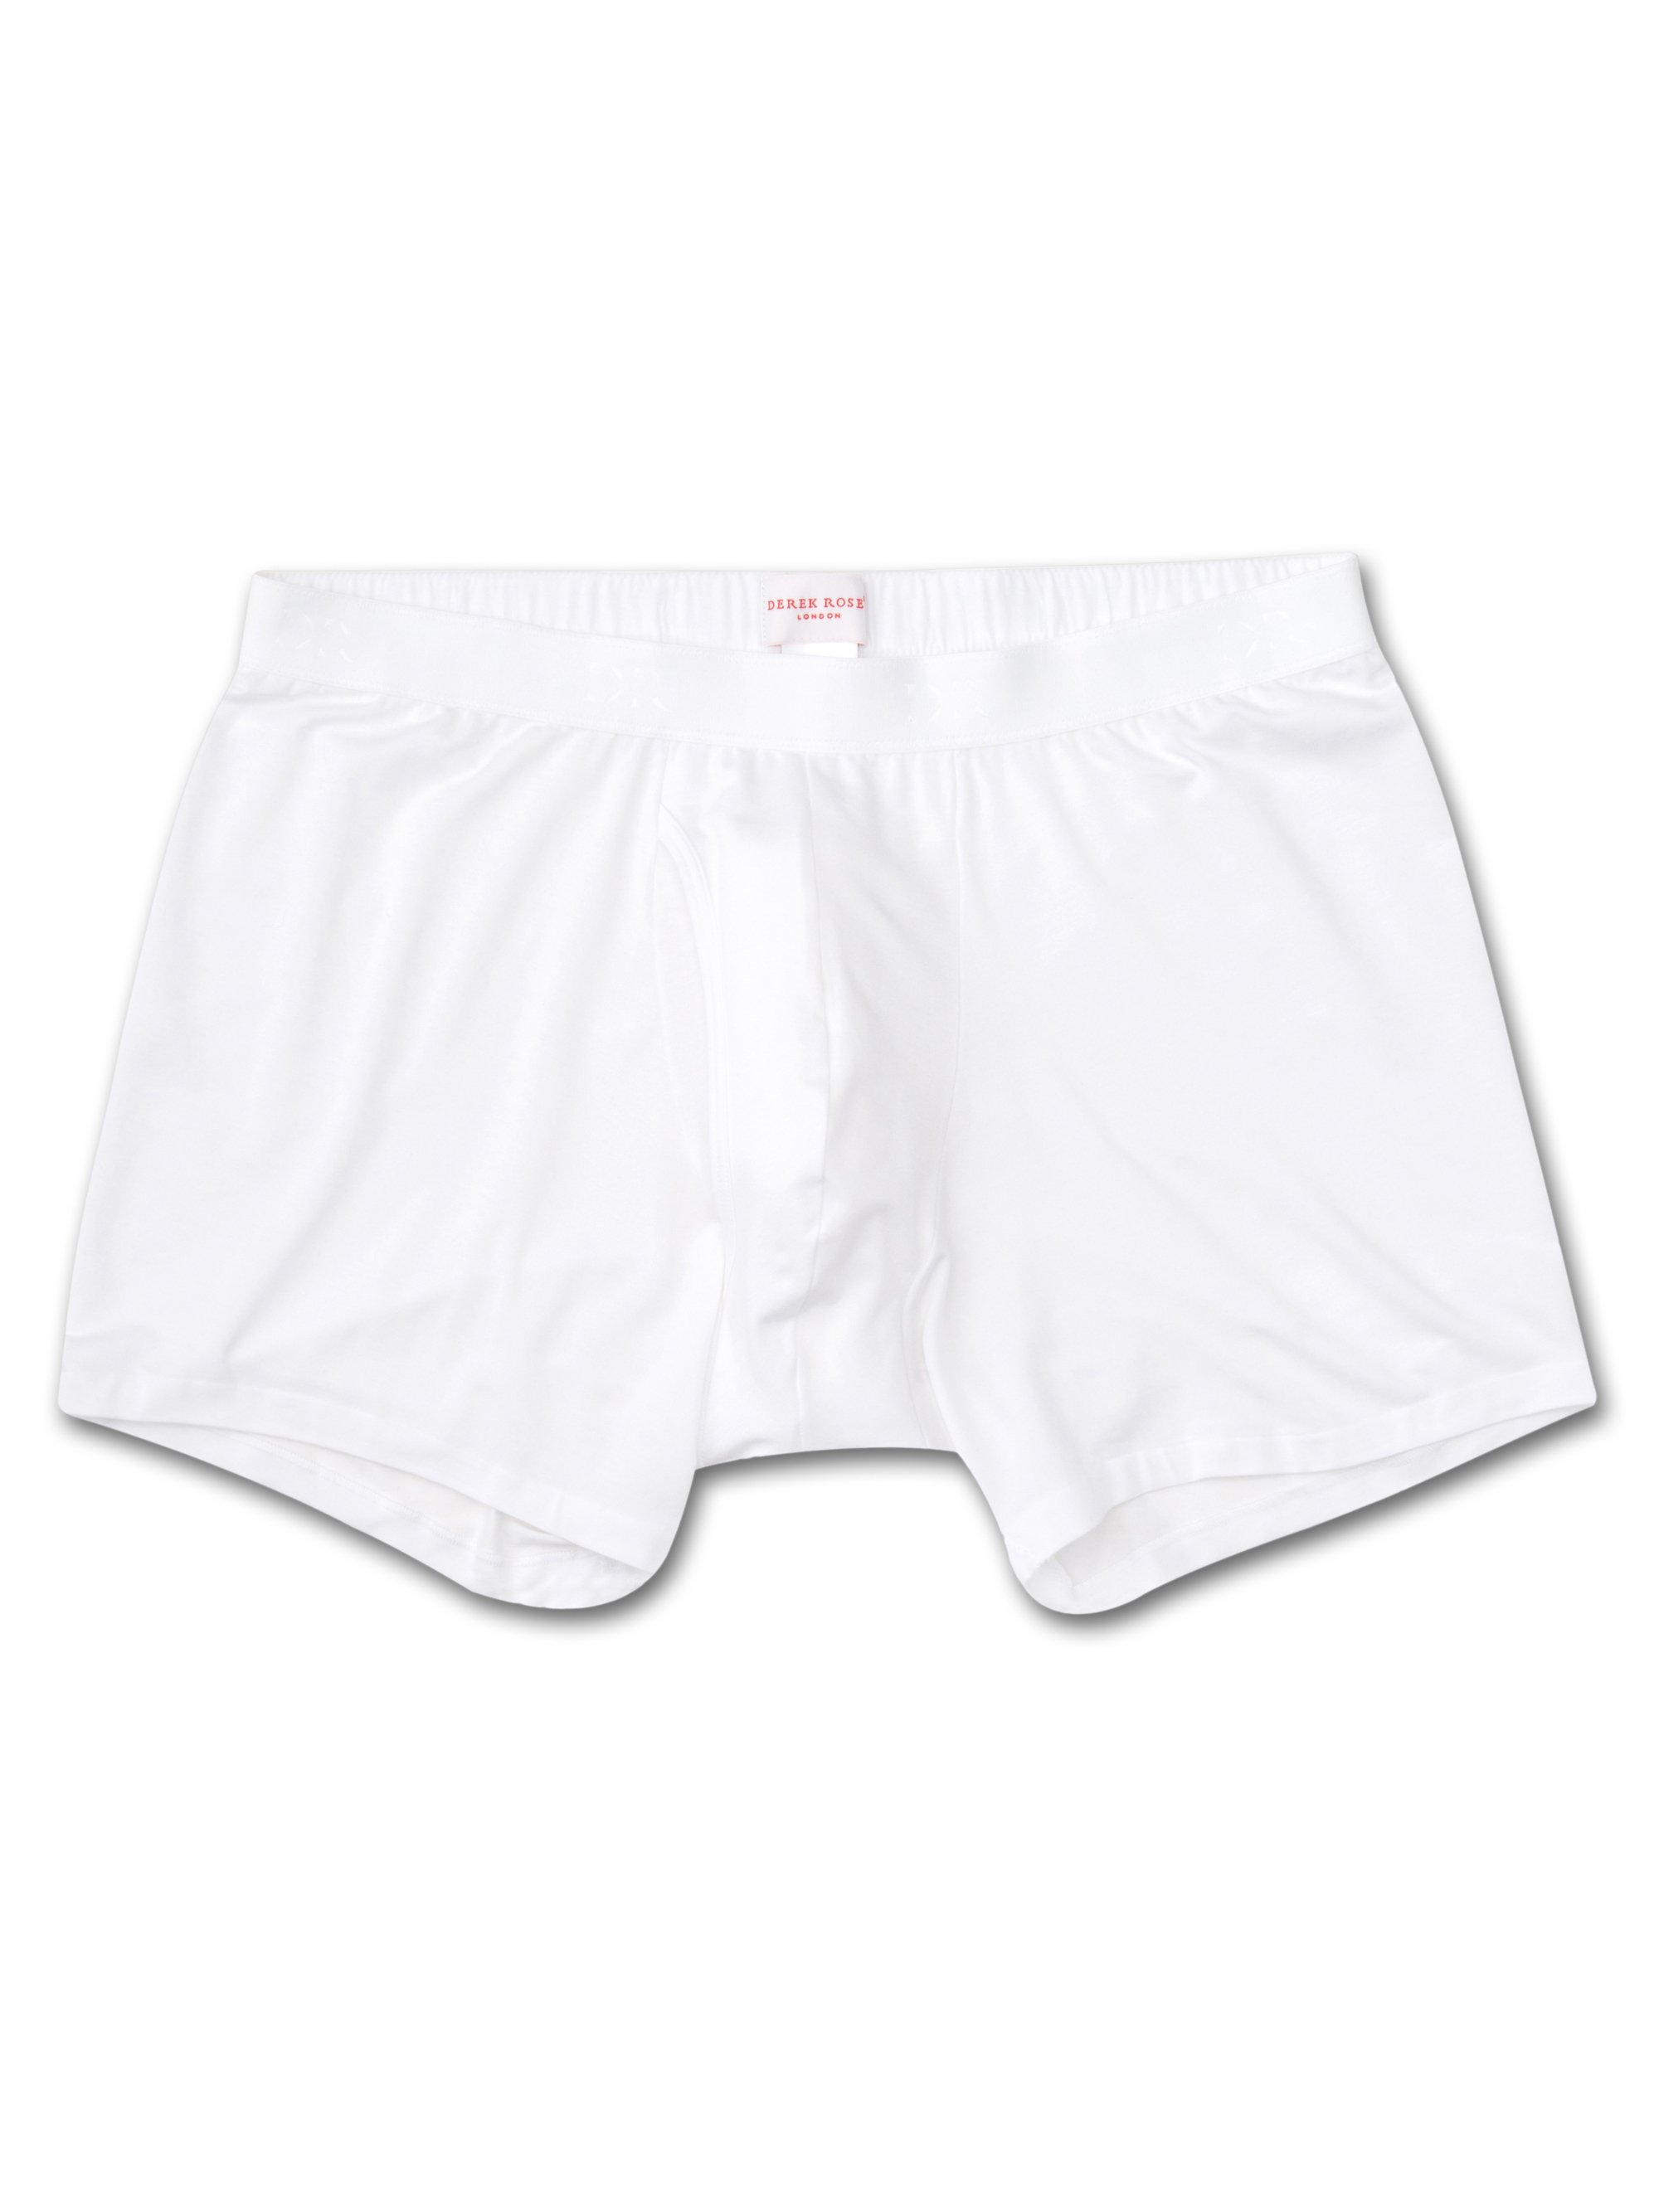 Men's Trunks Alex Micro Modal Stretch White